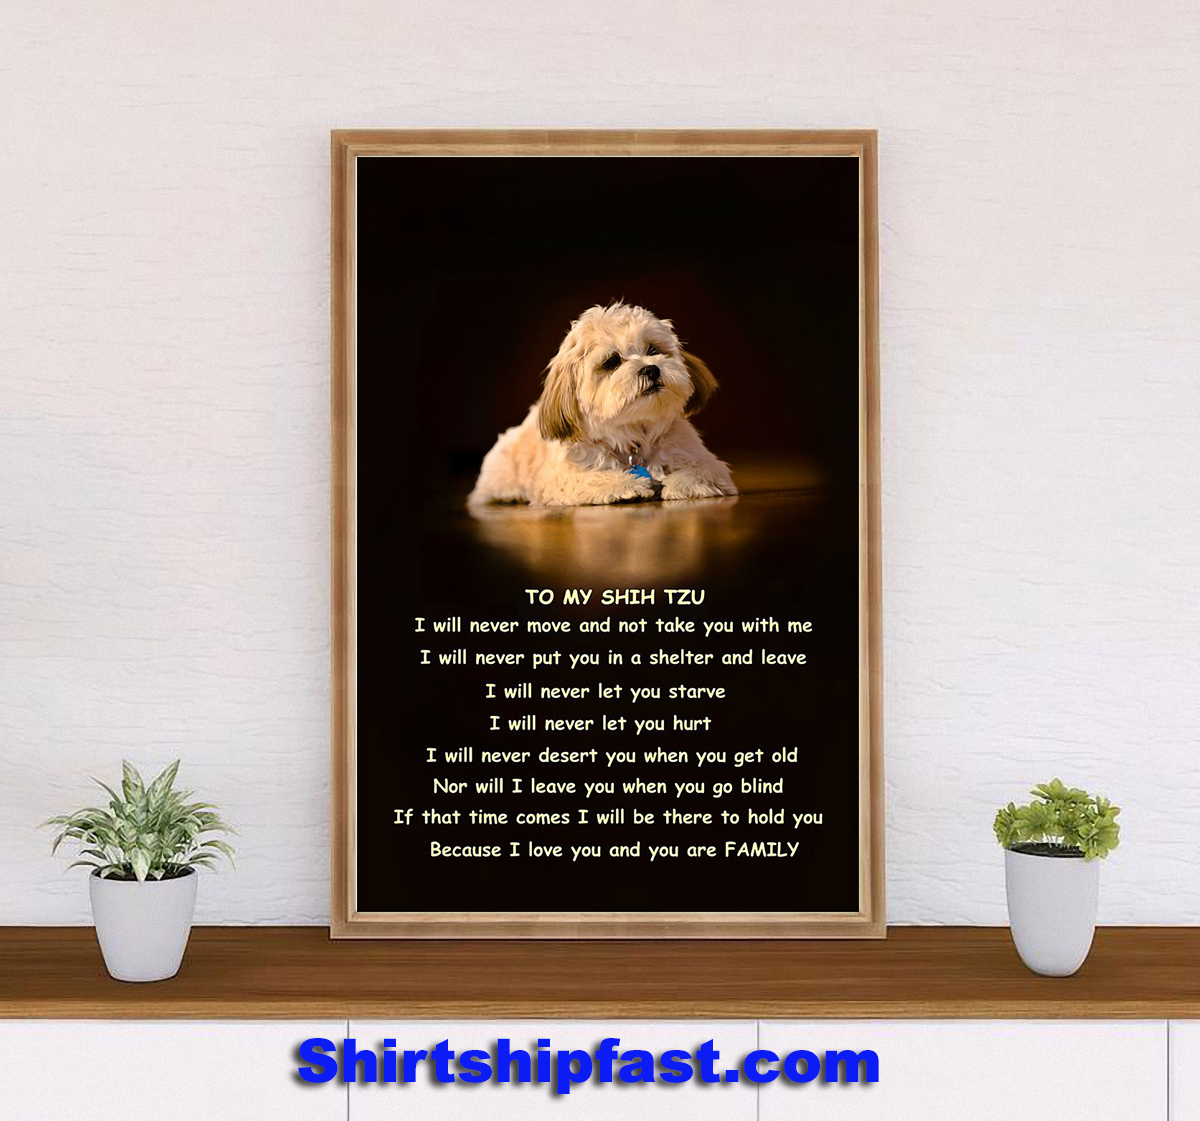 To my Shih Tzu family poster